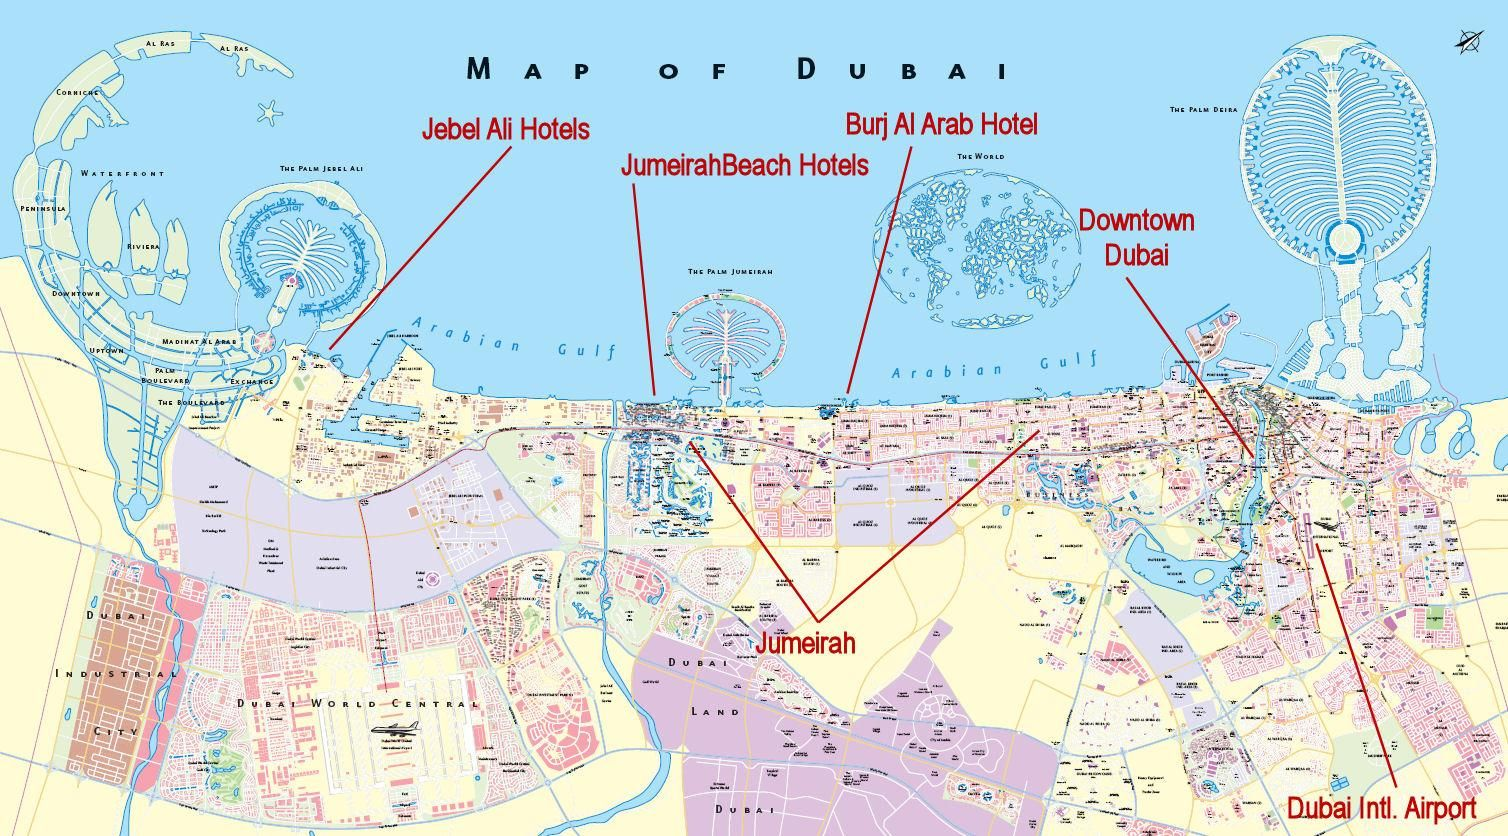 Complete dubai city map plus travel information guide for travelers complete dubai city map plus travel information guide for travelerstourist map dubaidubai city map pdfdubai city map free downloaddubai gumiabroncs Choice Image